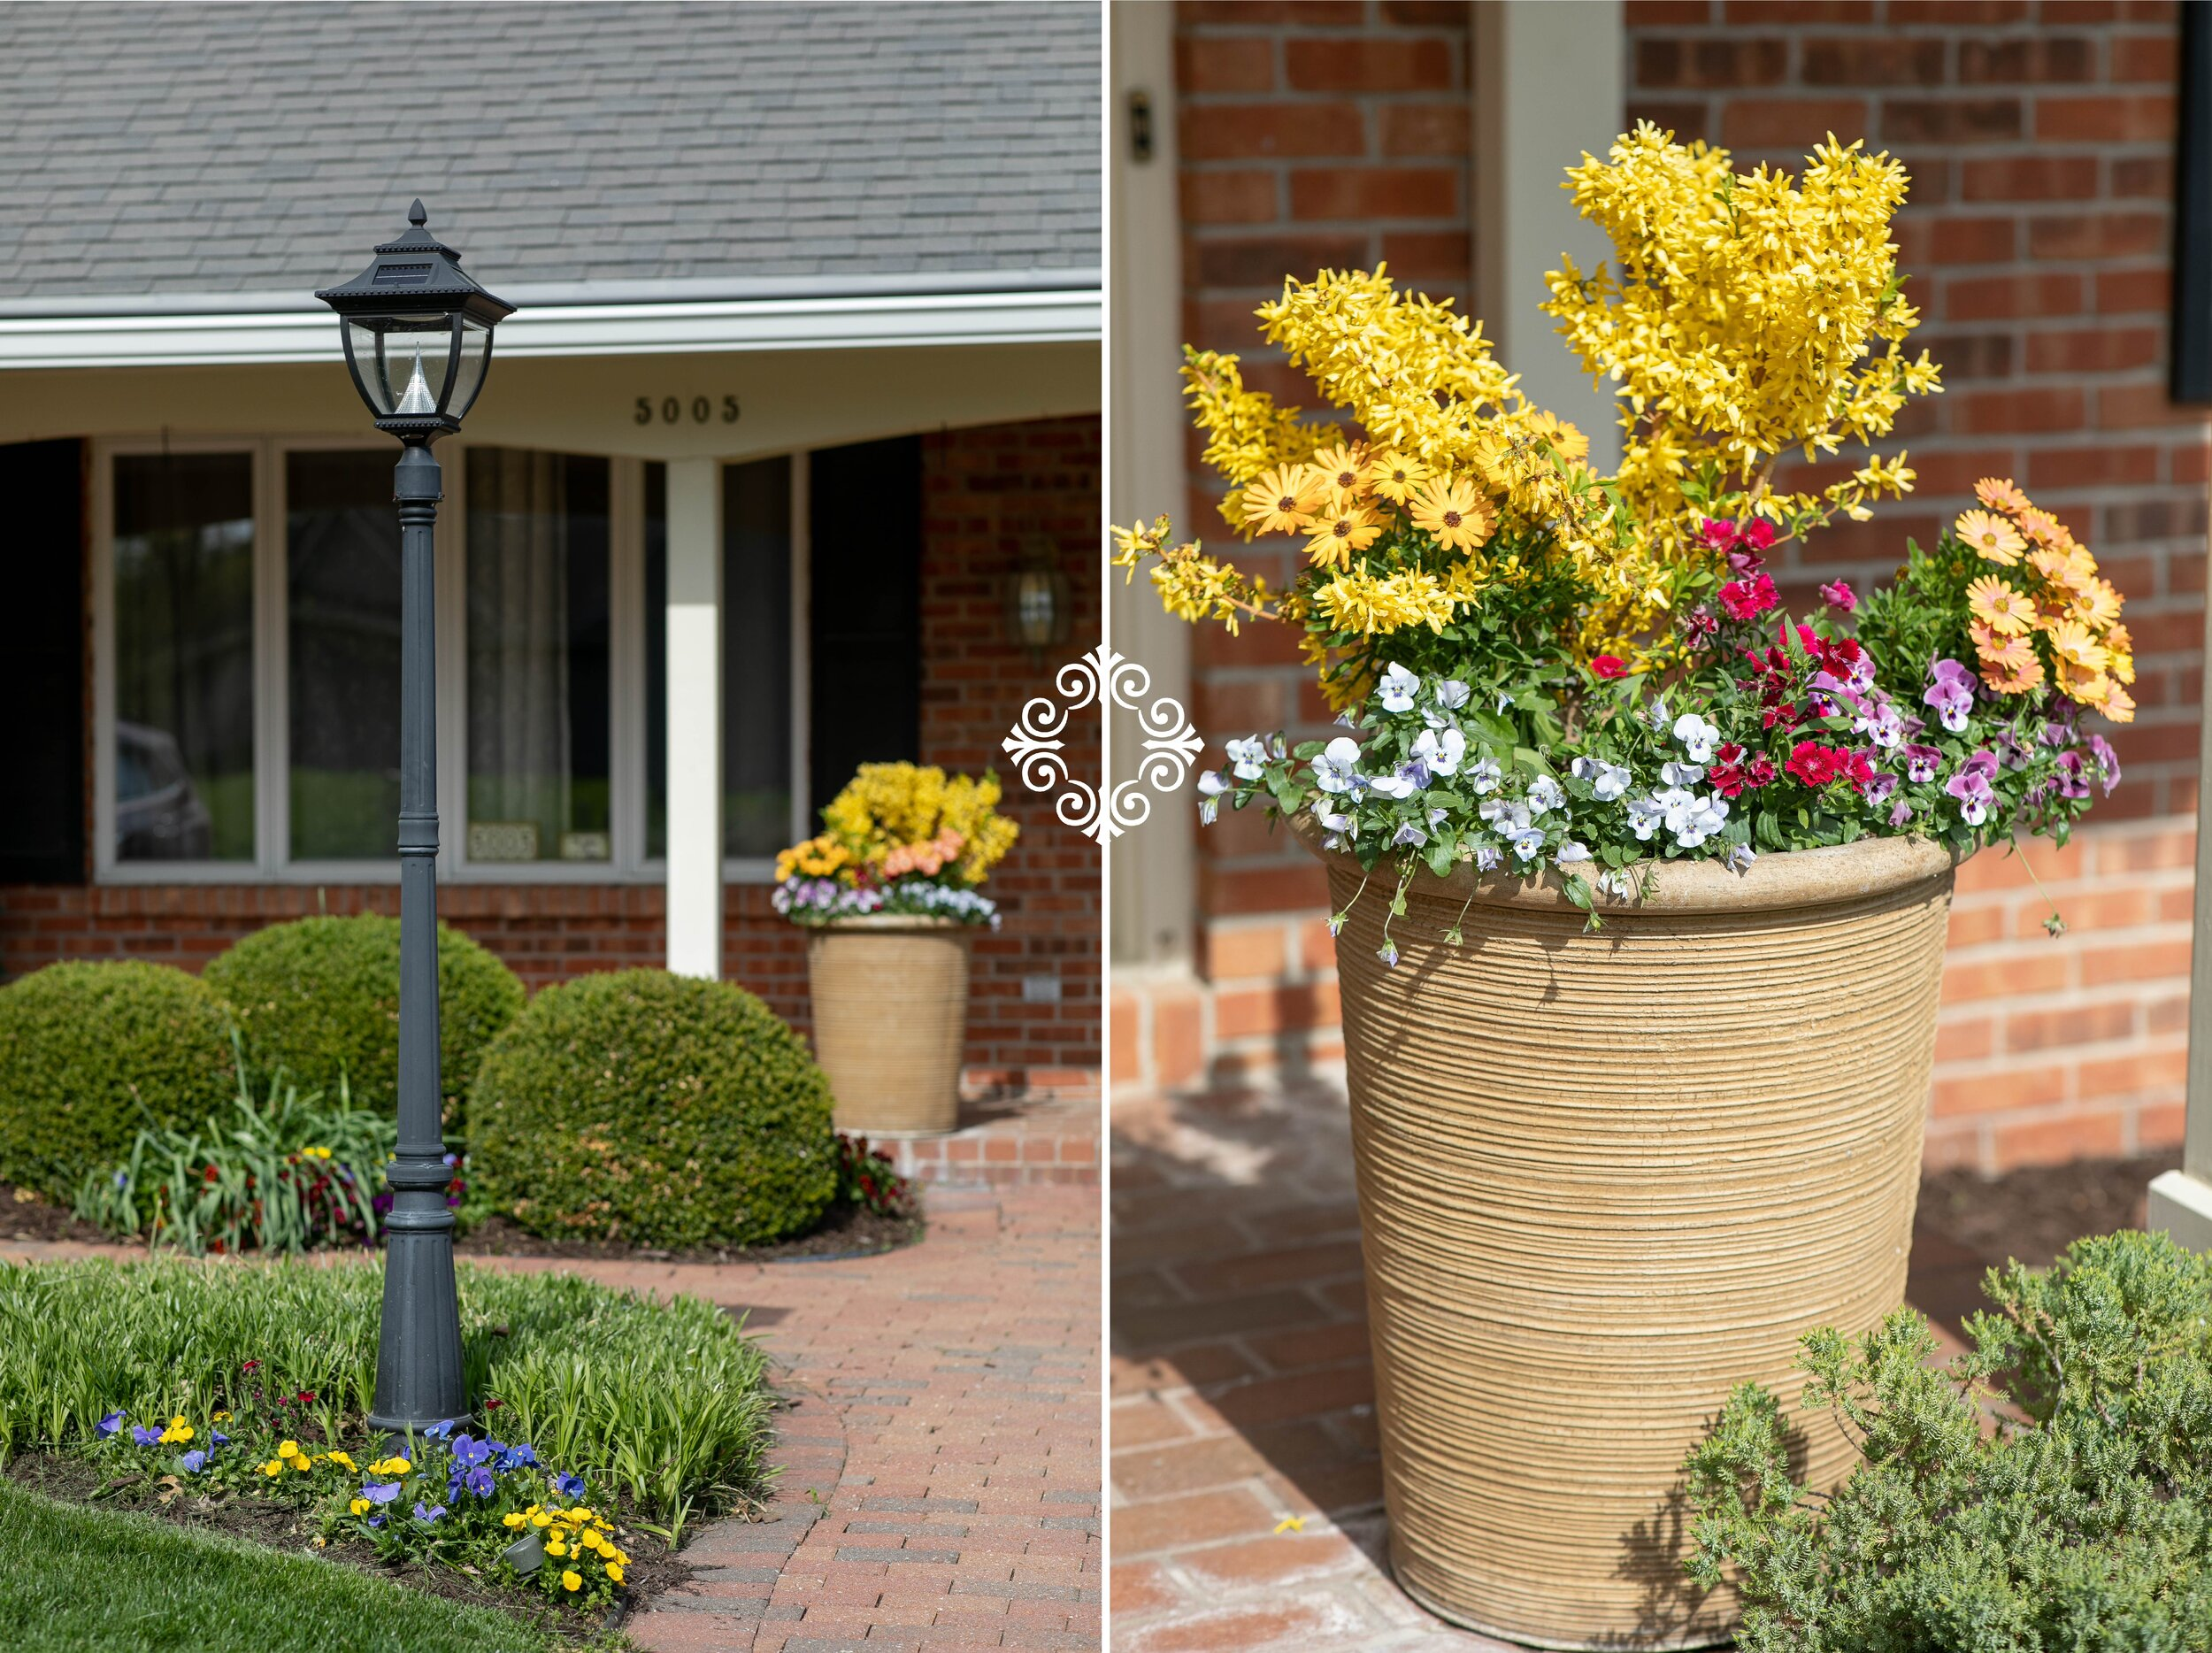 Rost Landscaping Silverbox Photographers